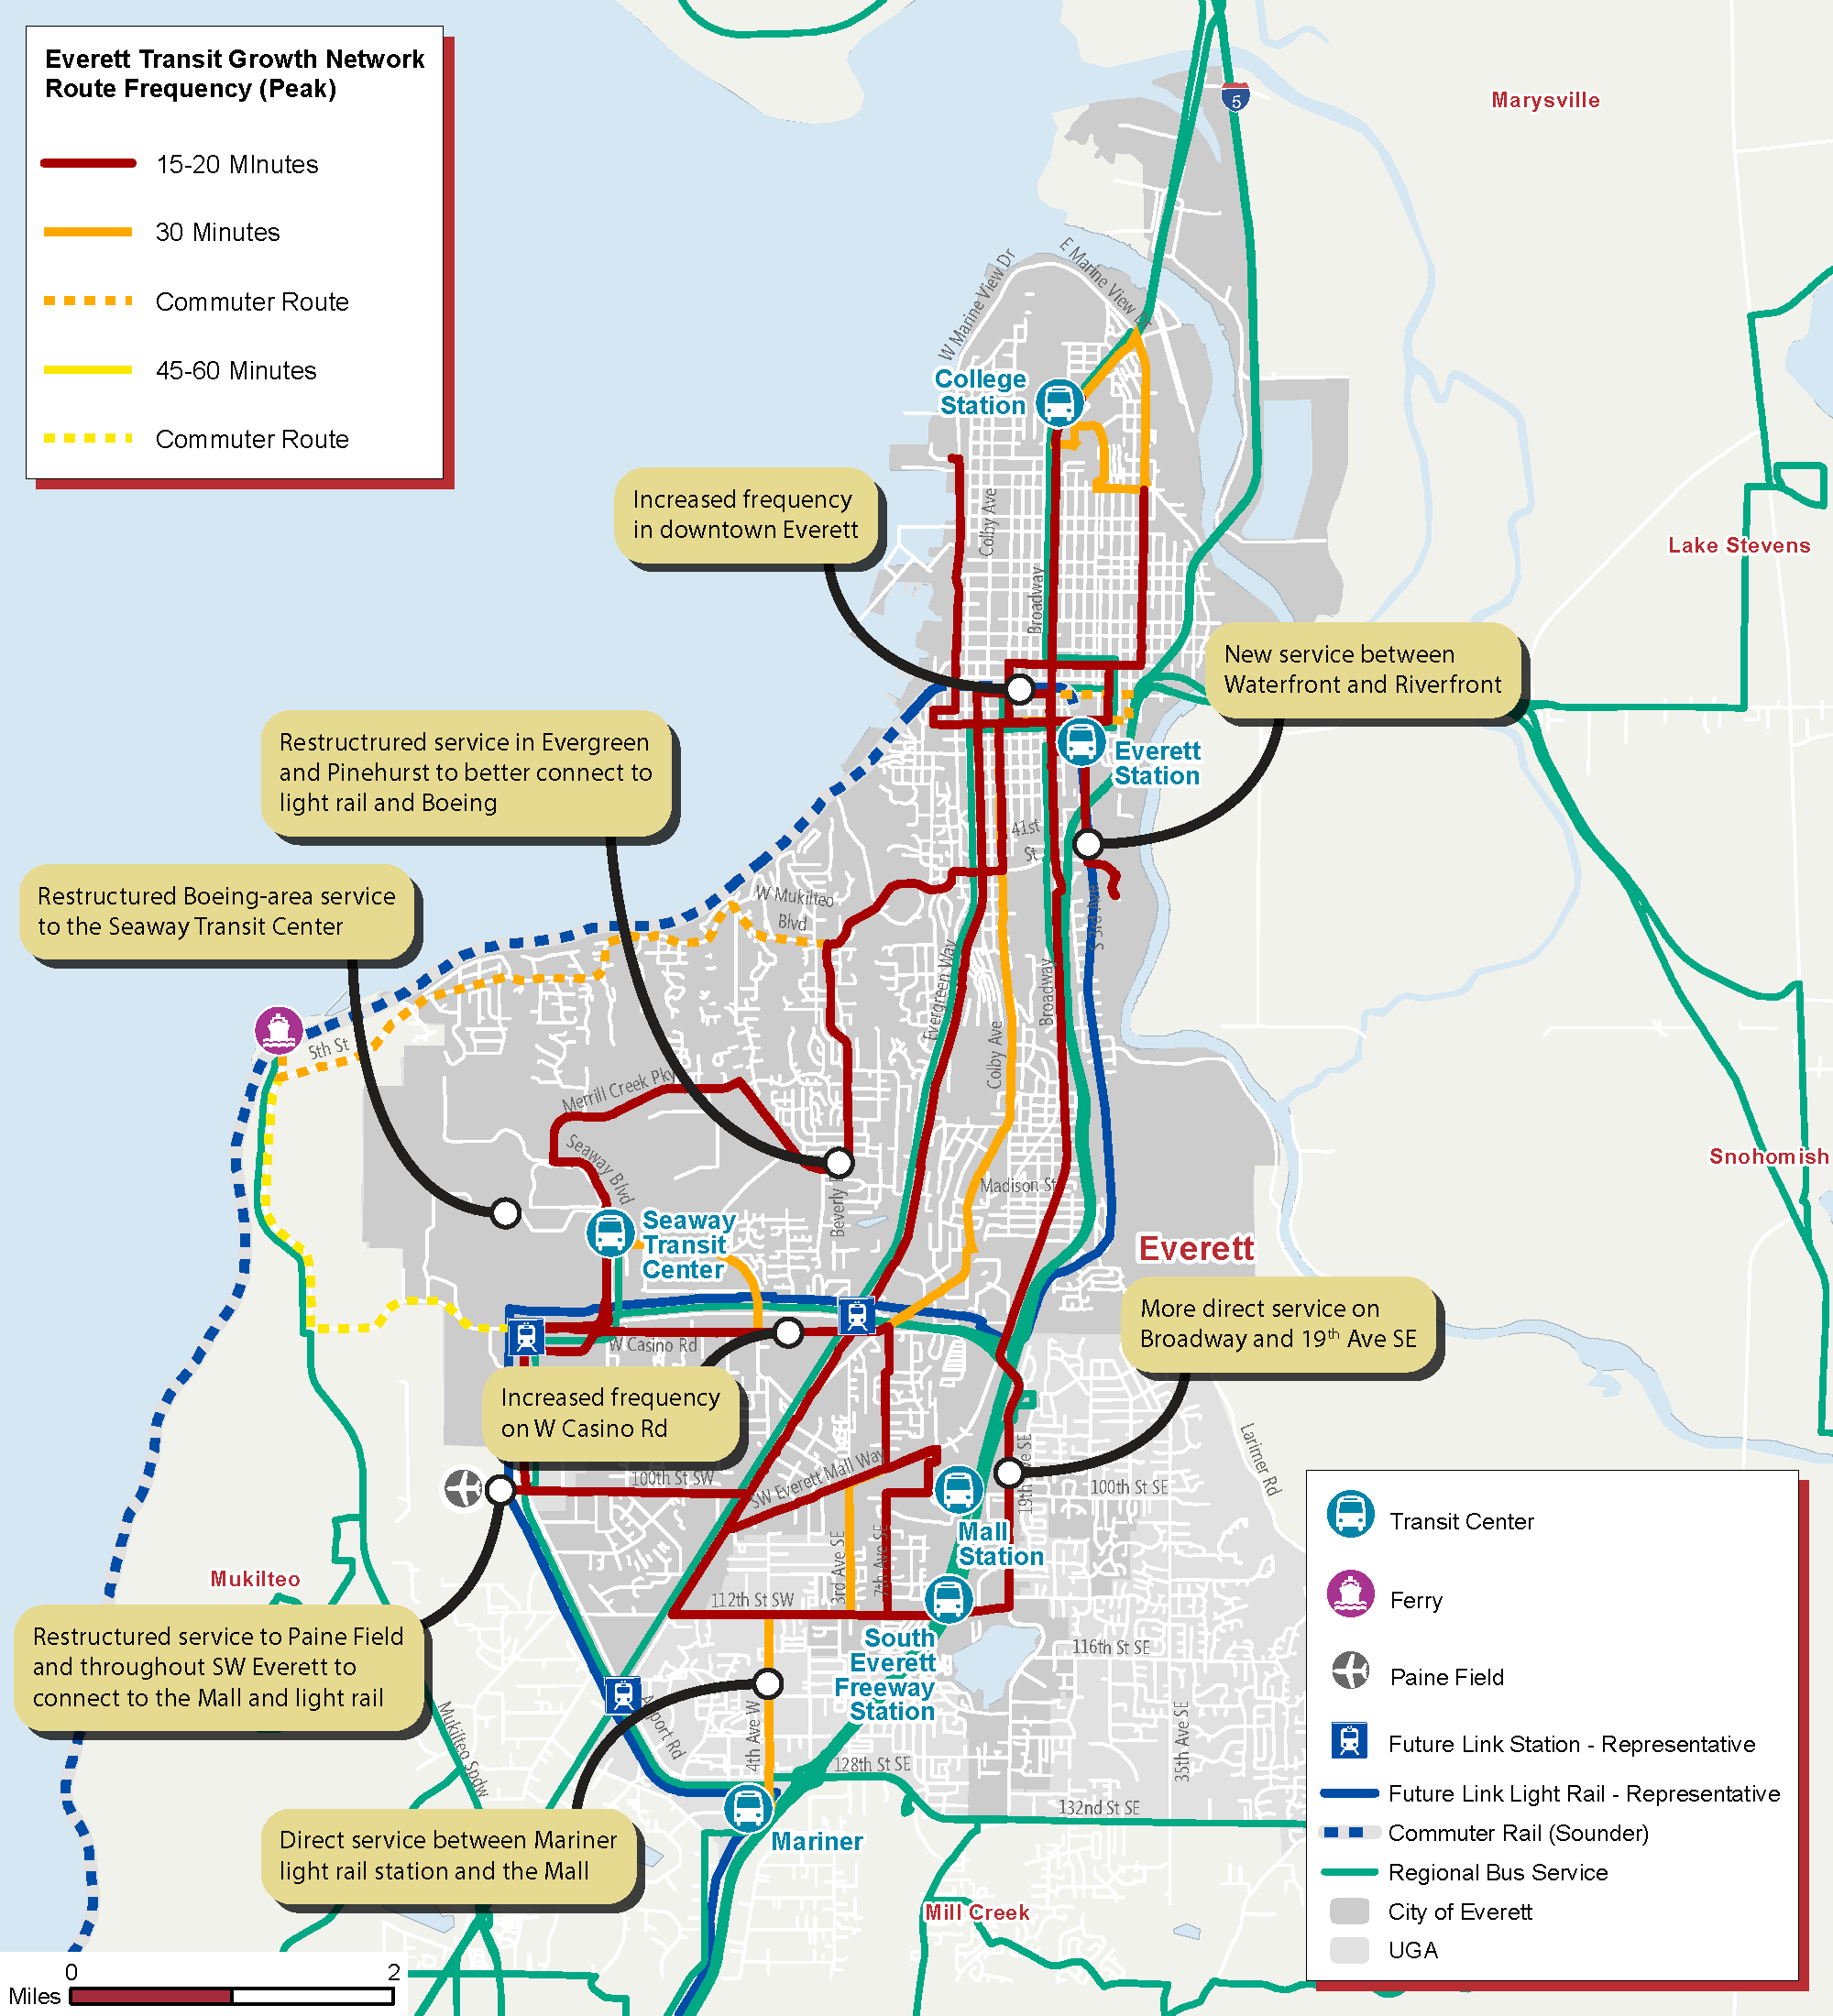 Everett Transit Growth Network Route Frequency (Peak)